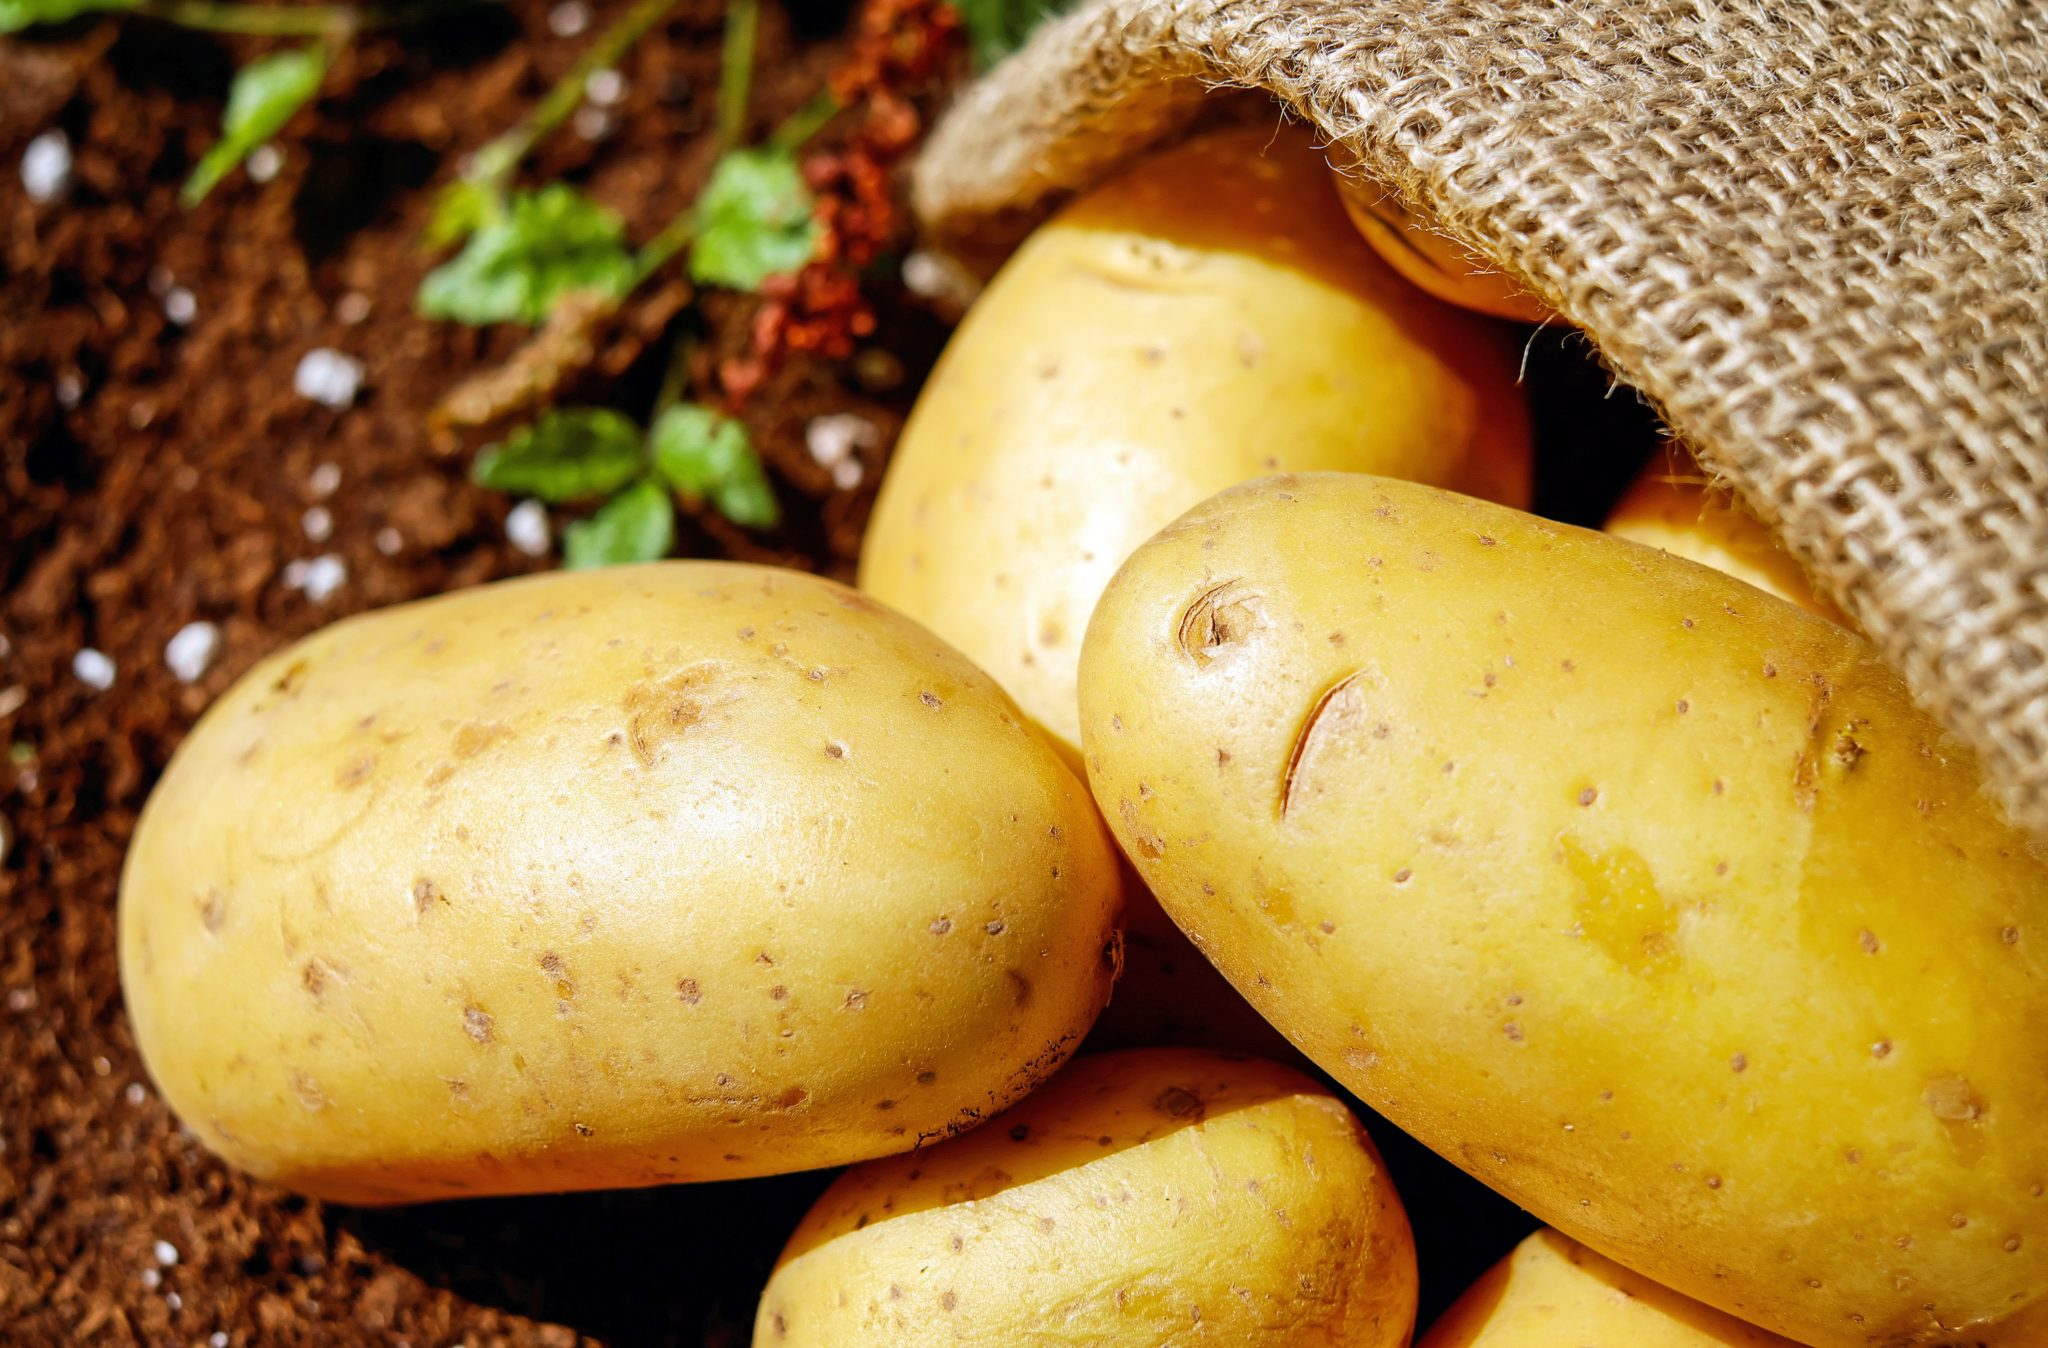 Potatoes for gut health and weight loss: The Potato Hack